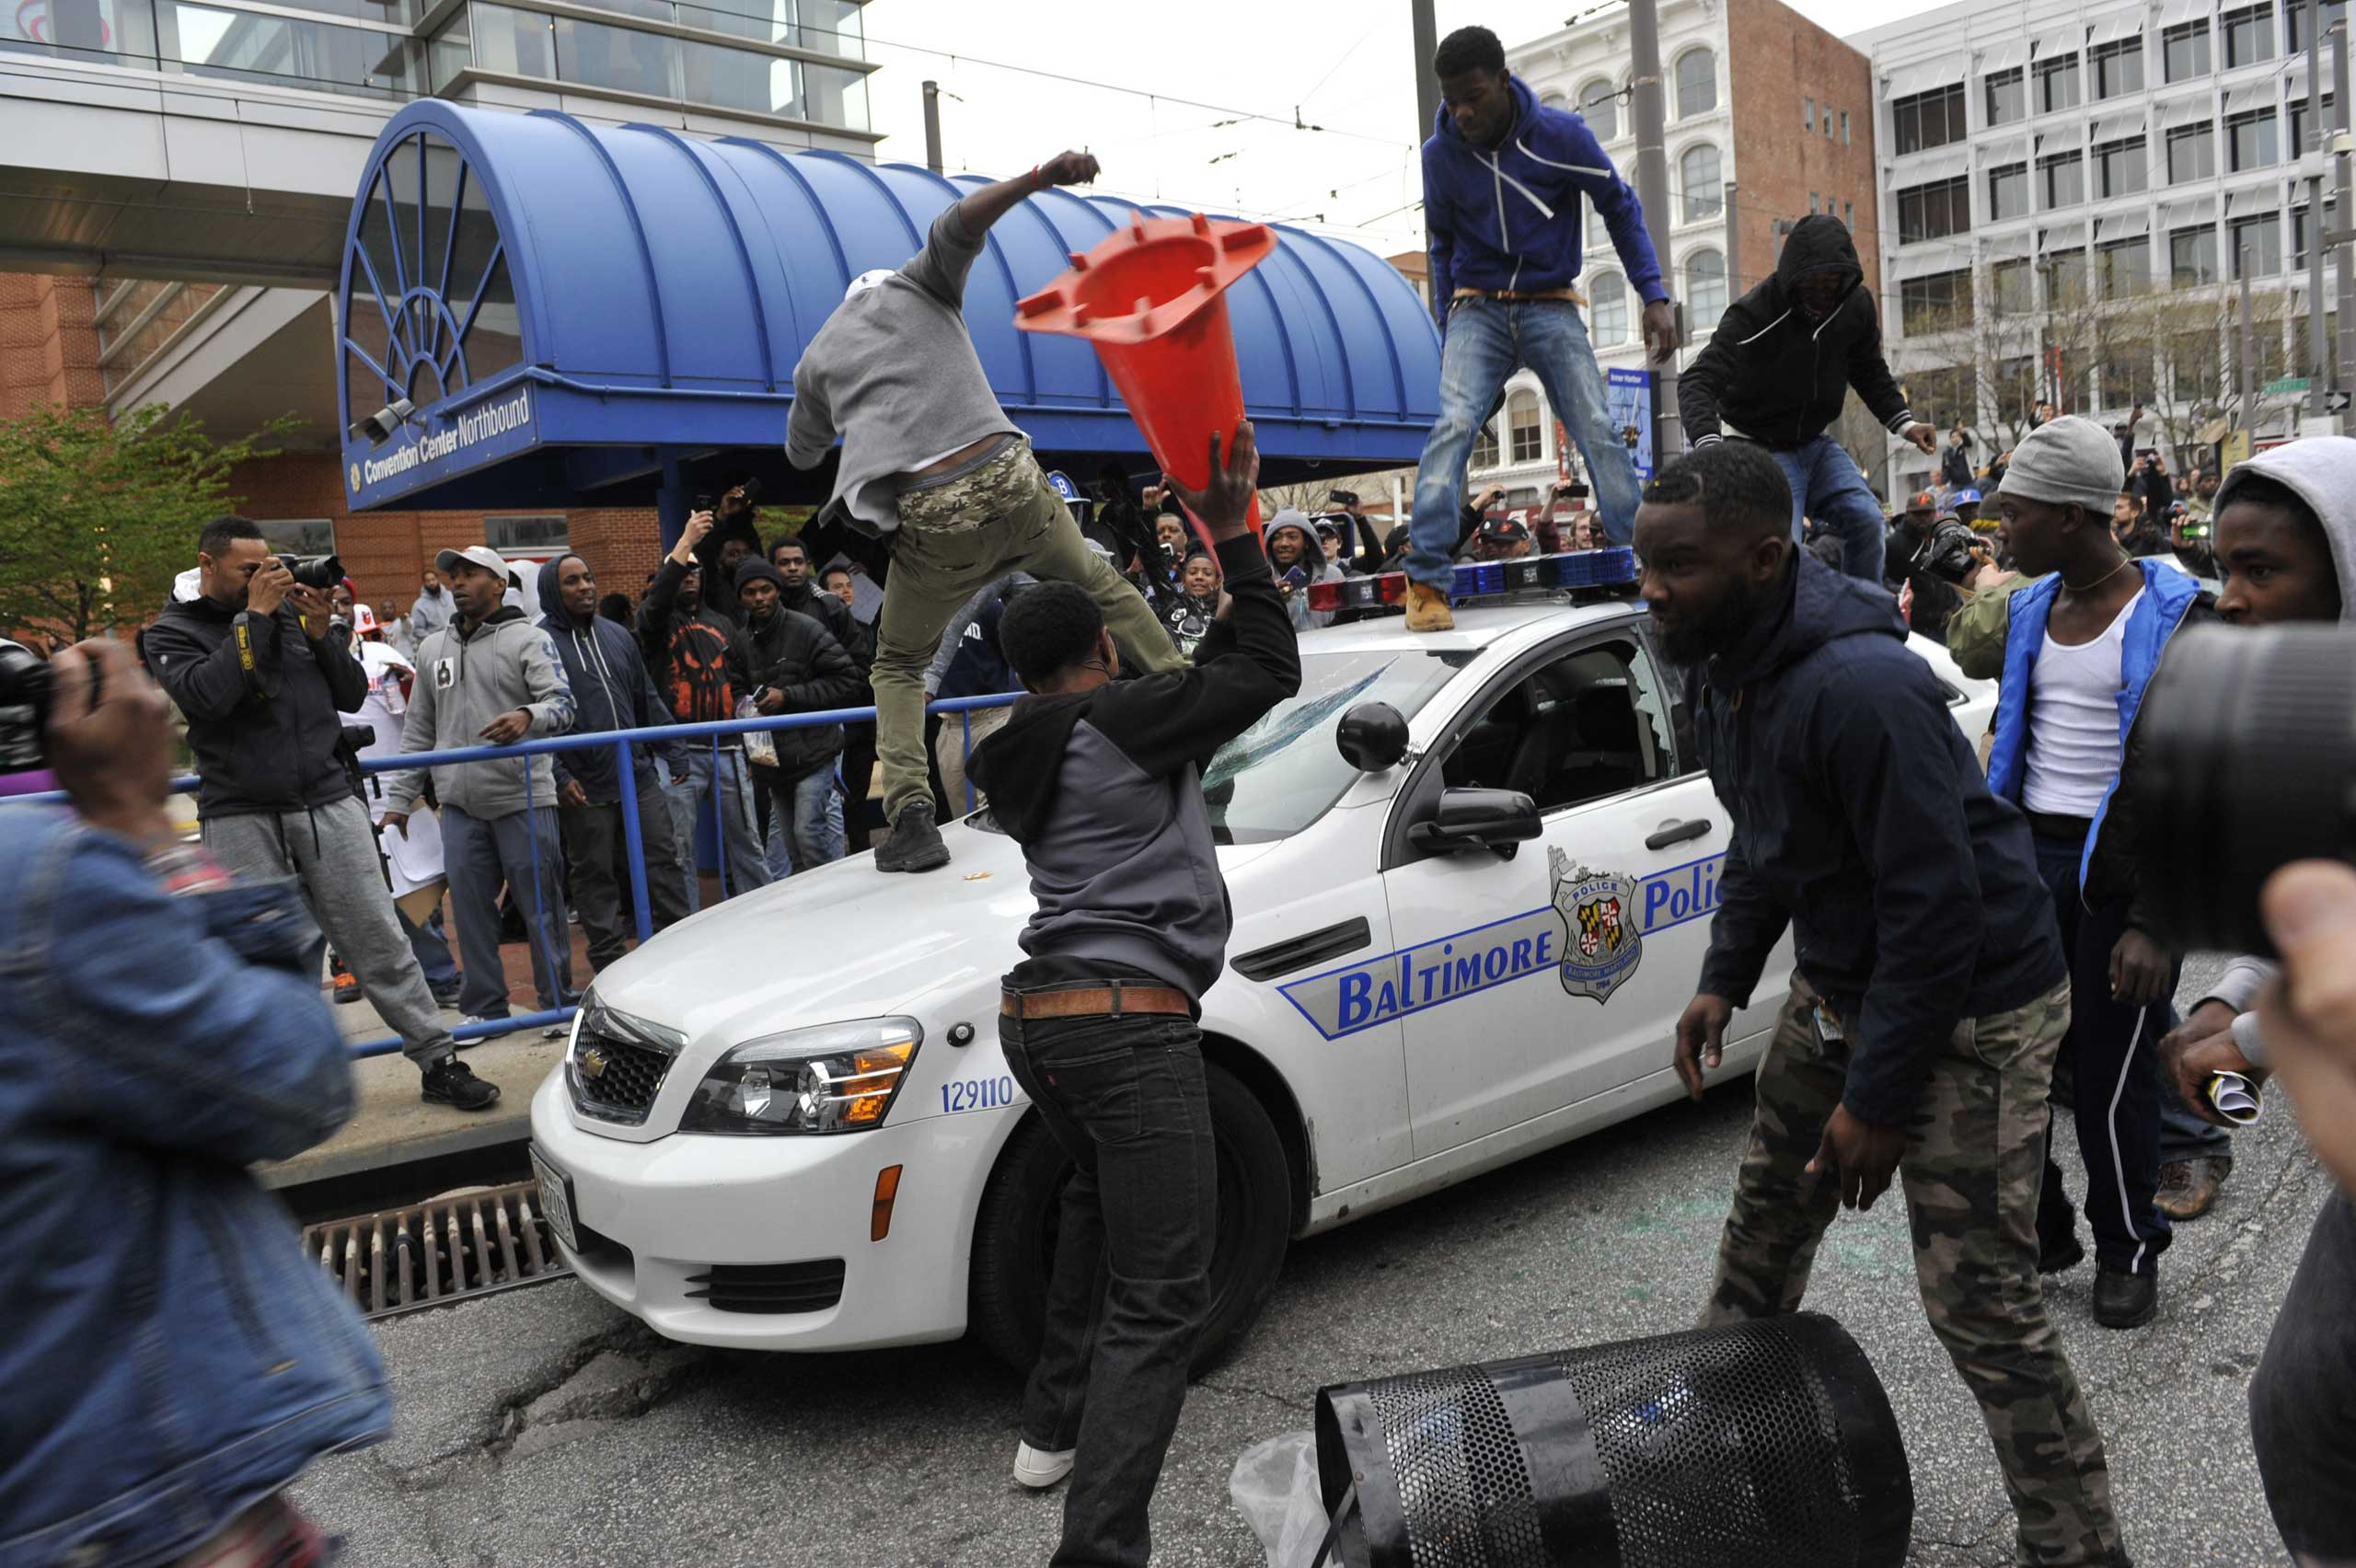 Protesters attack Baltimore police cars and suspected police cars during a demonstration against police brutality in downtown Baltimore on April 25, 2015.